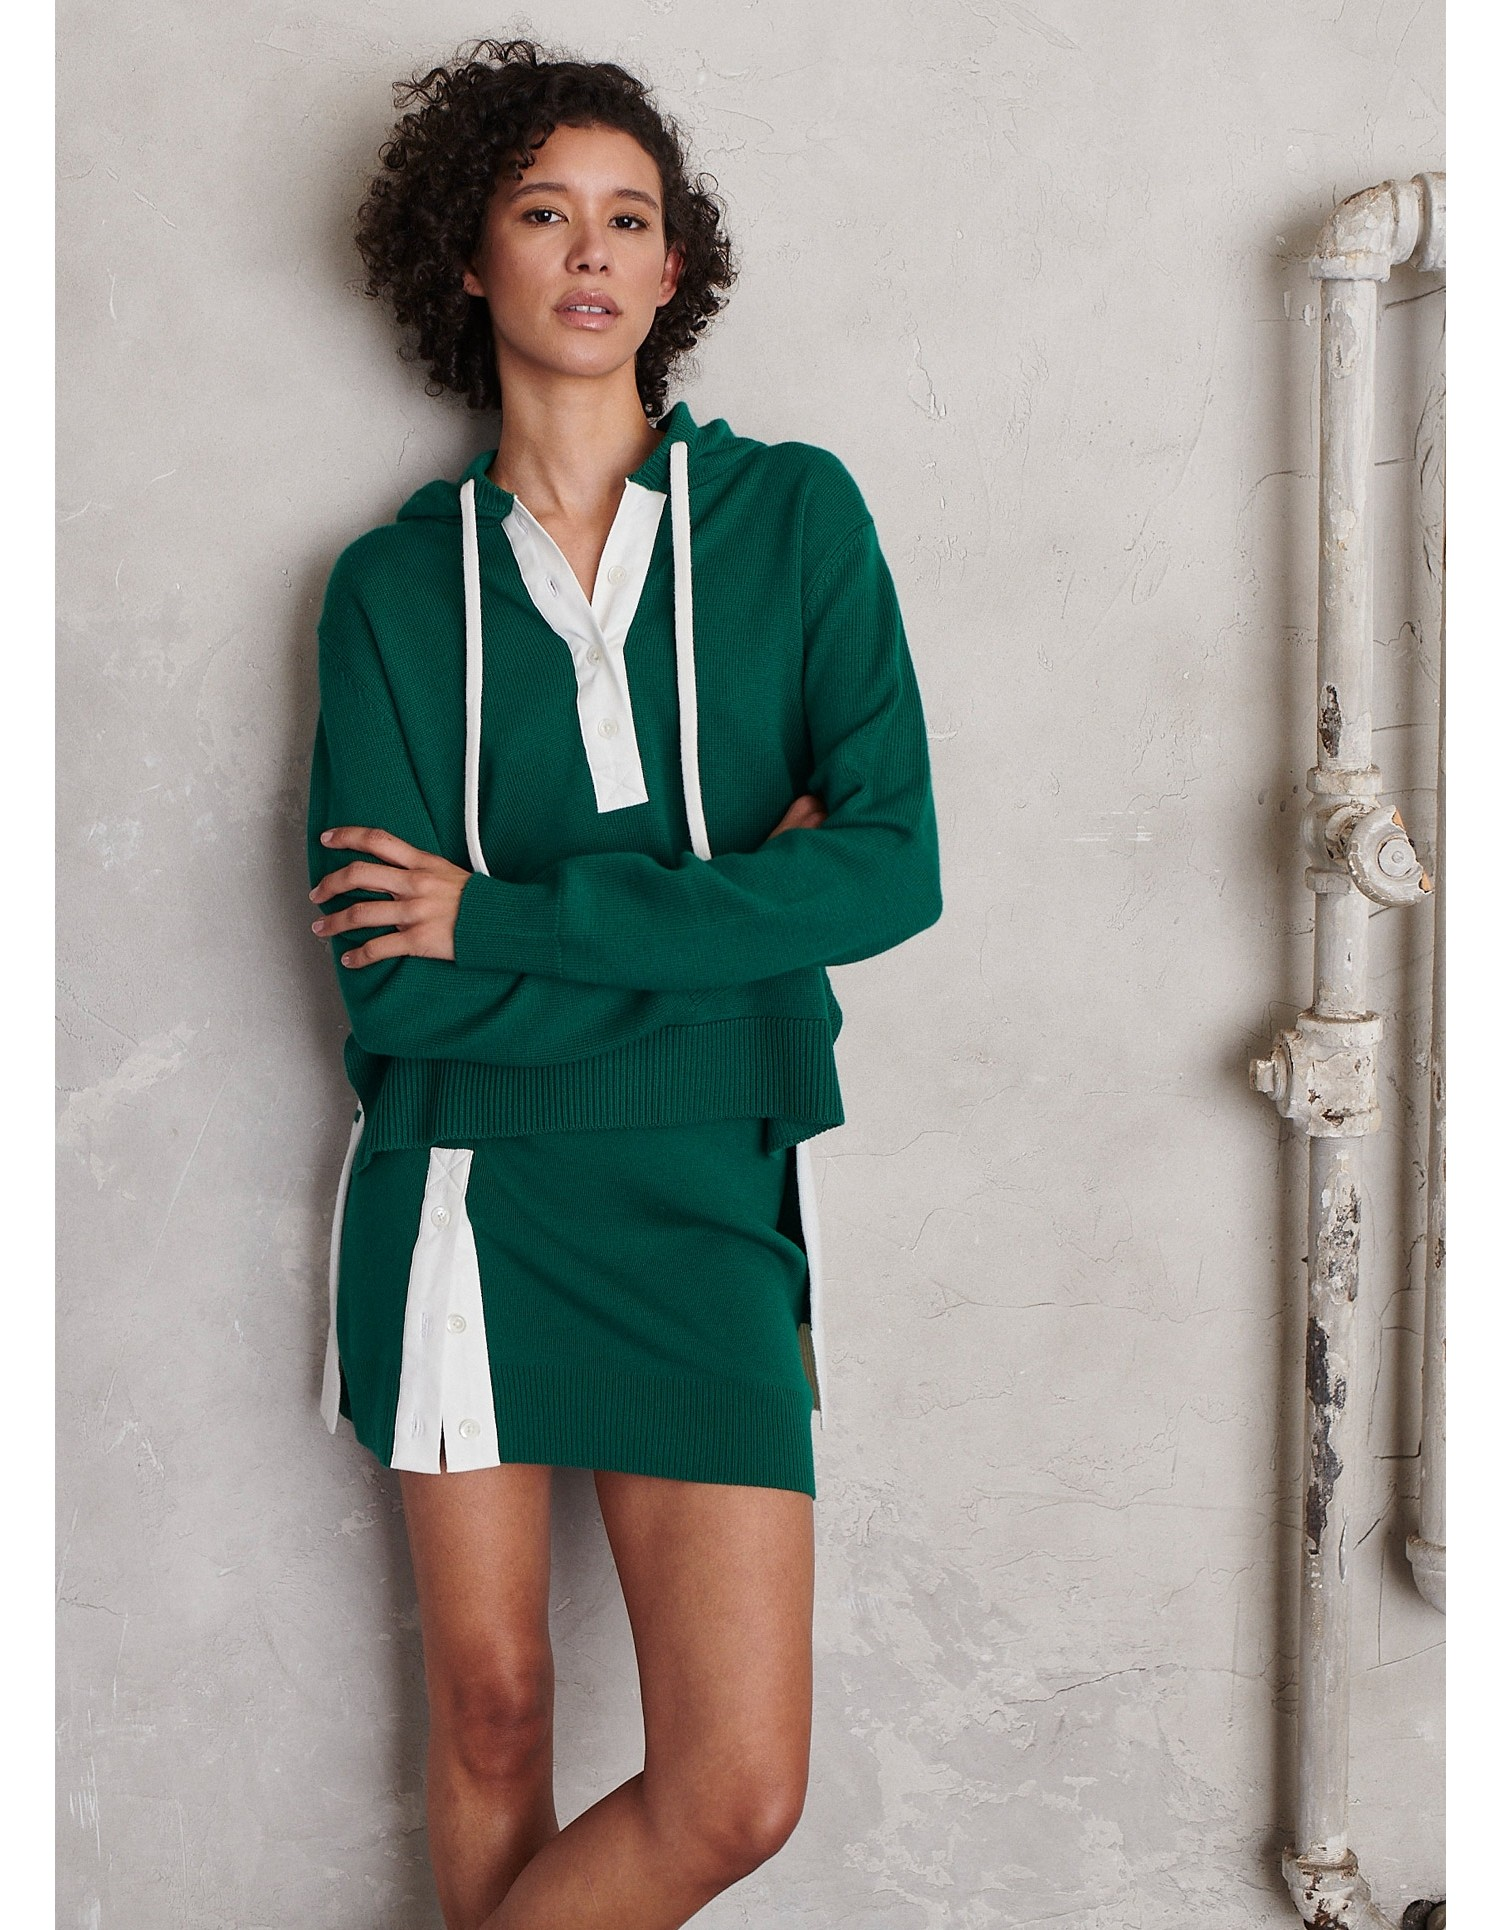 MONSE Rugby Knit Mini Skirt in Grass and Ivory on Model Front View